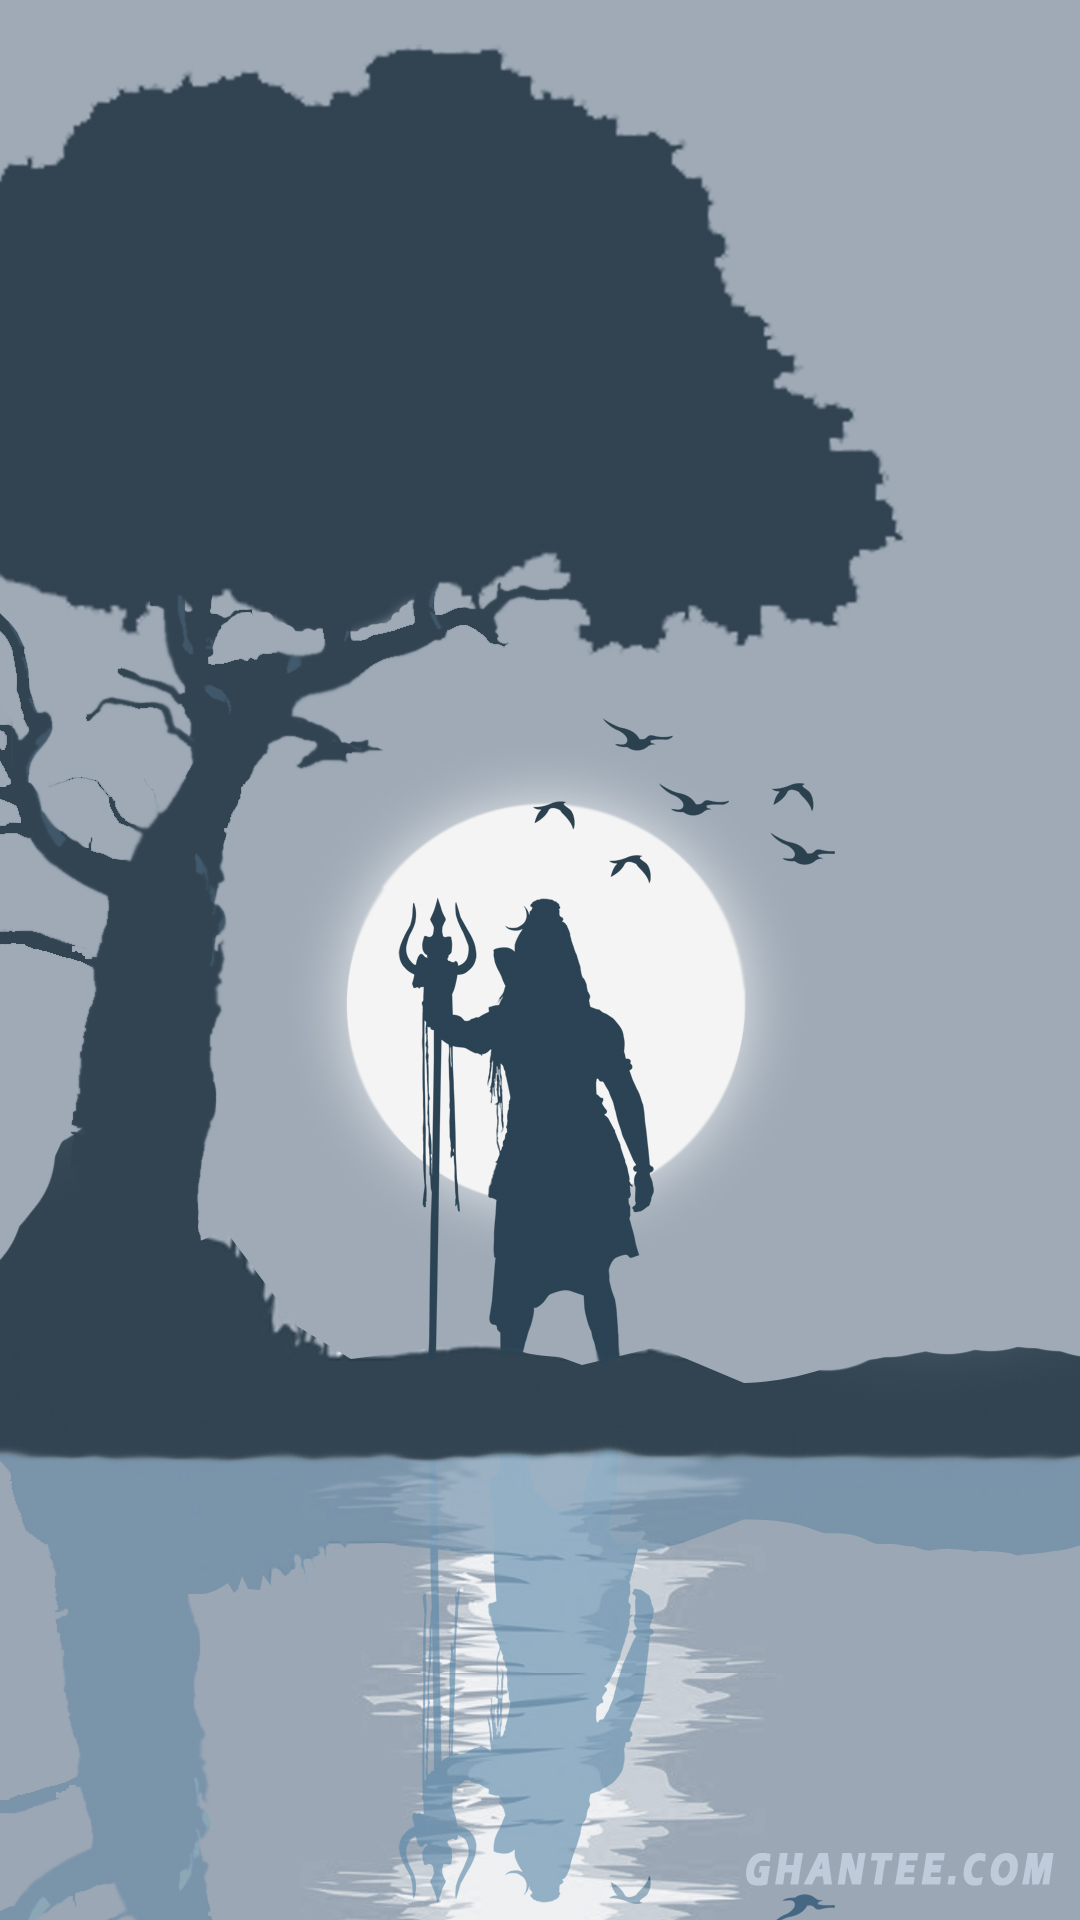 lord shiva hd wallpapers – minimalist grey phone wallpaper